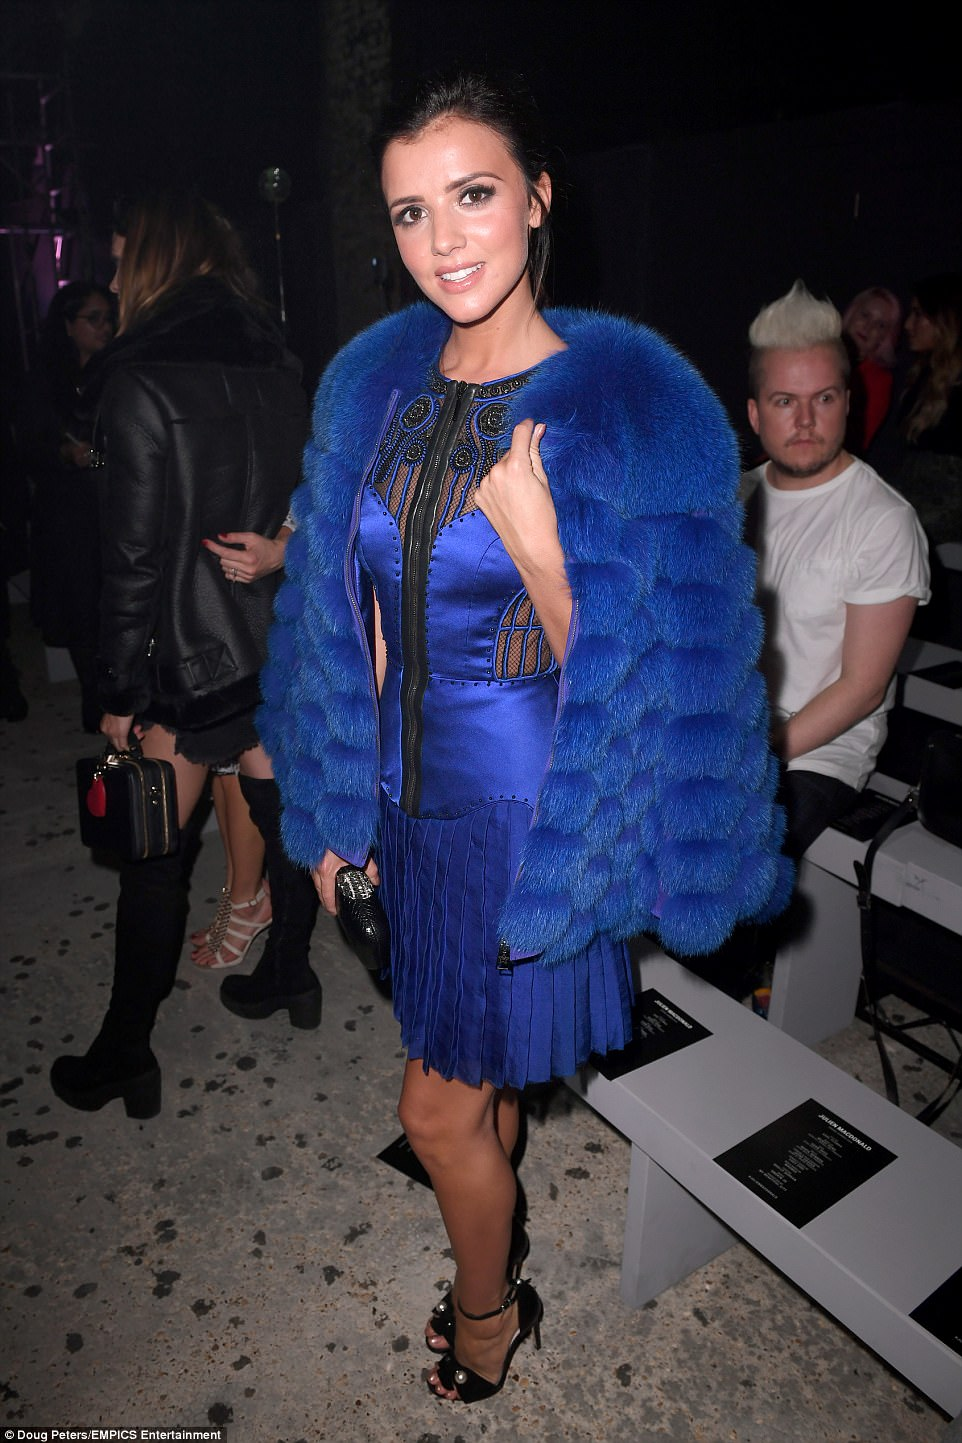 Finishing touches: Lucy oozed confidence as she posed at the bash, with a chic fluffy coat to match her dress layered on top later on